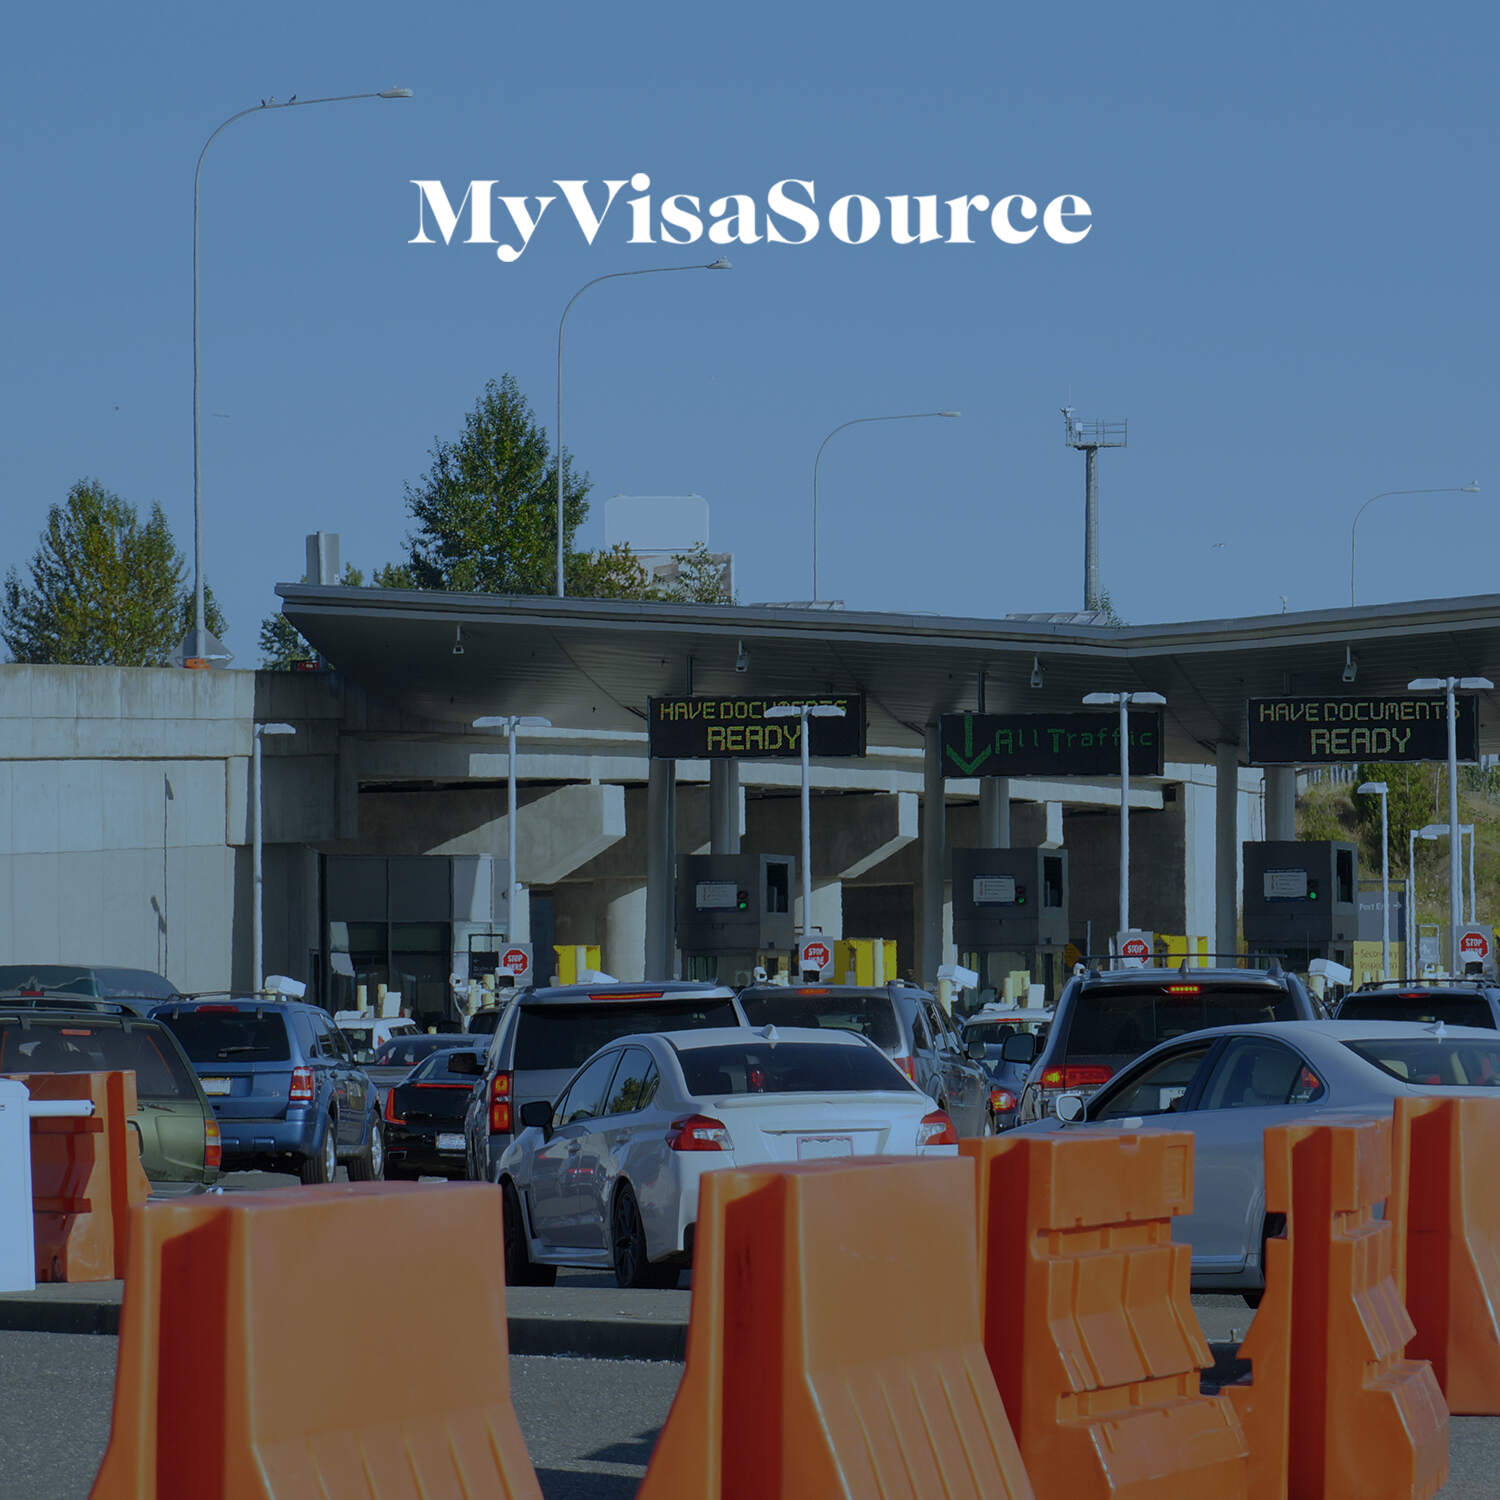 border crossing with lineups of cars my visa source